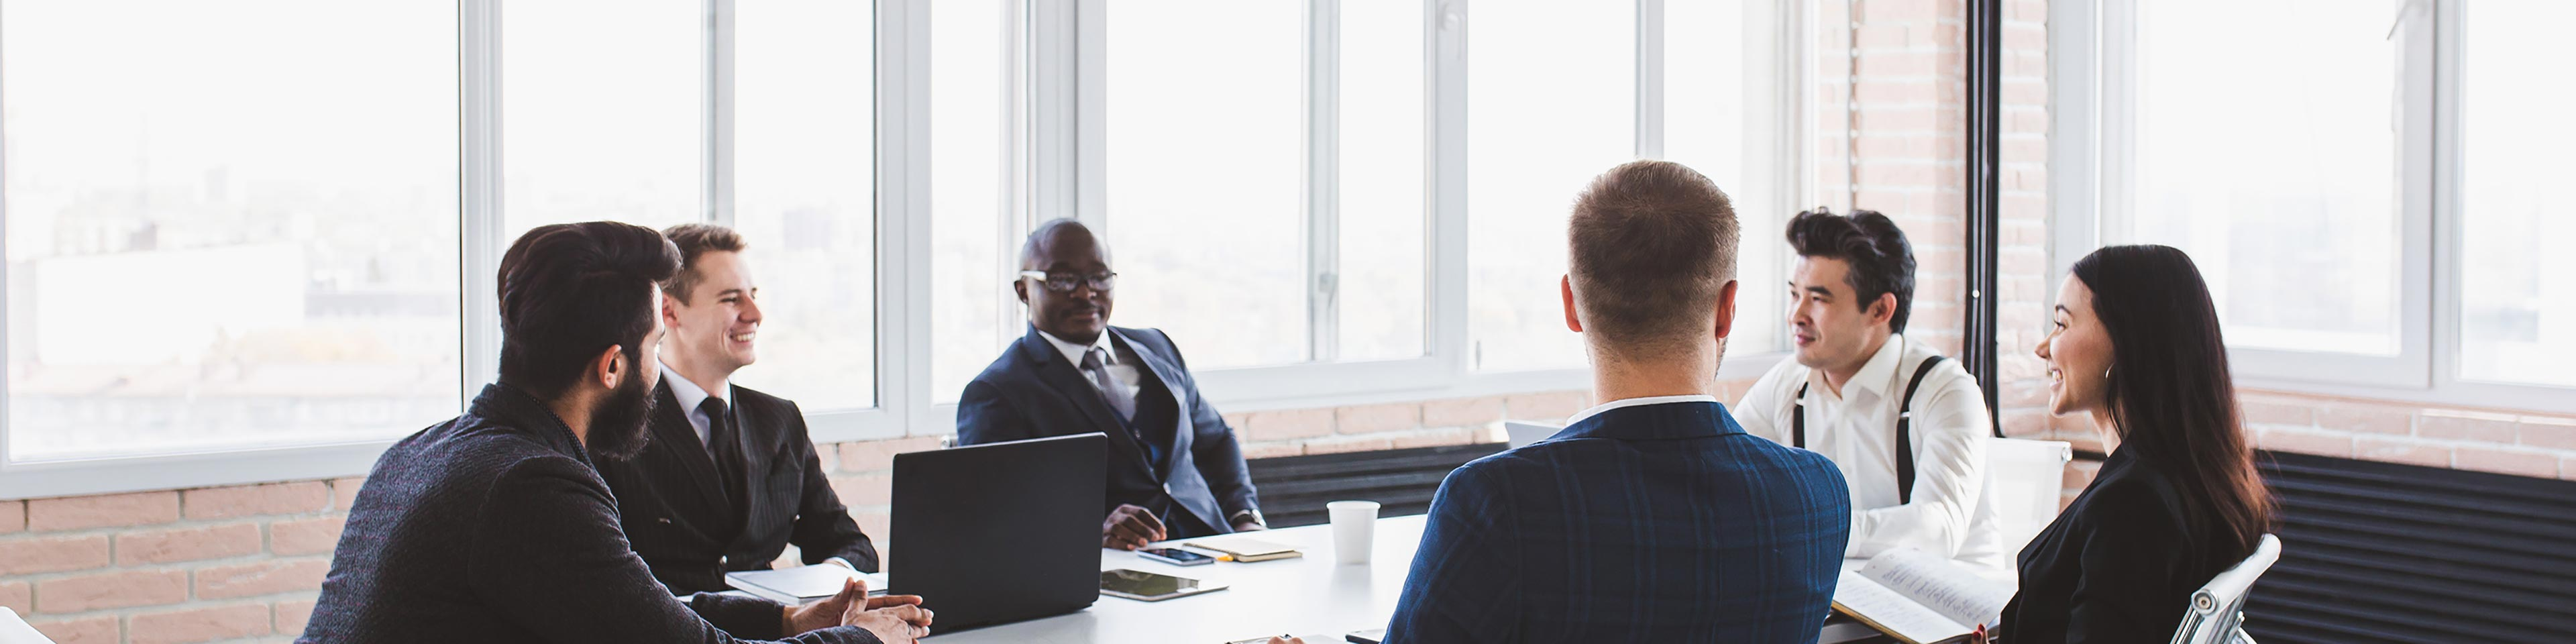 Business people sitting around a table in a meeting